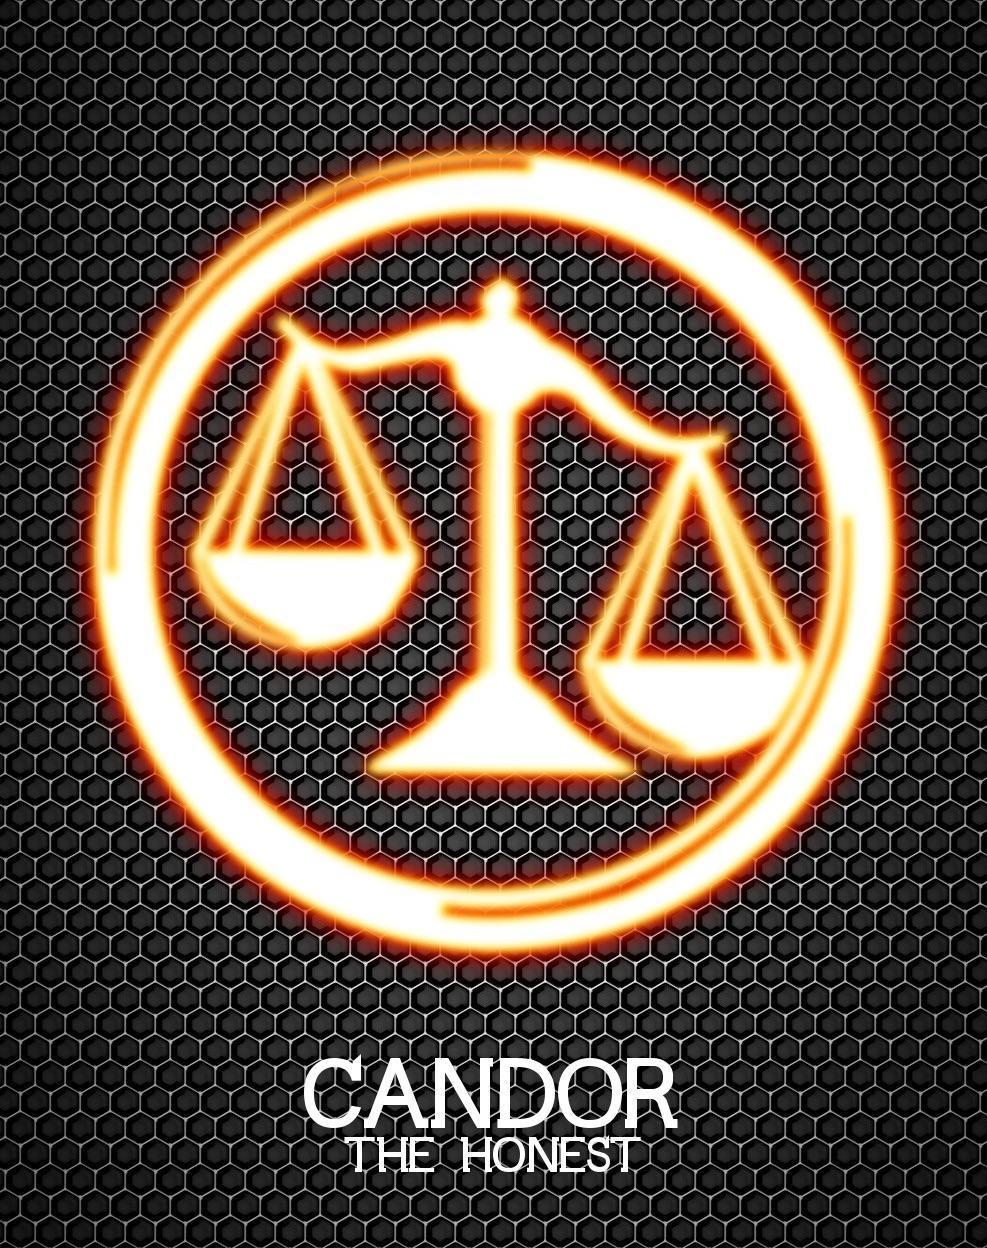 Do you think you could survive in Candor?